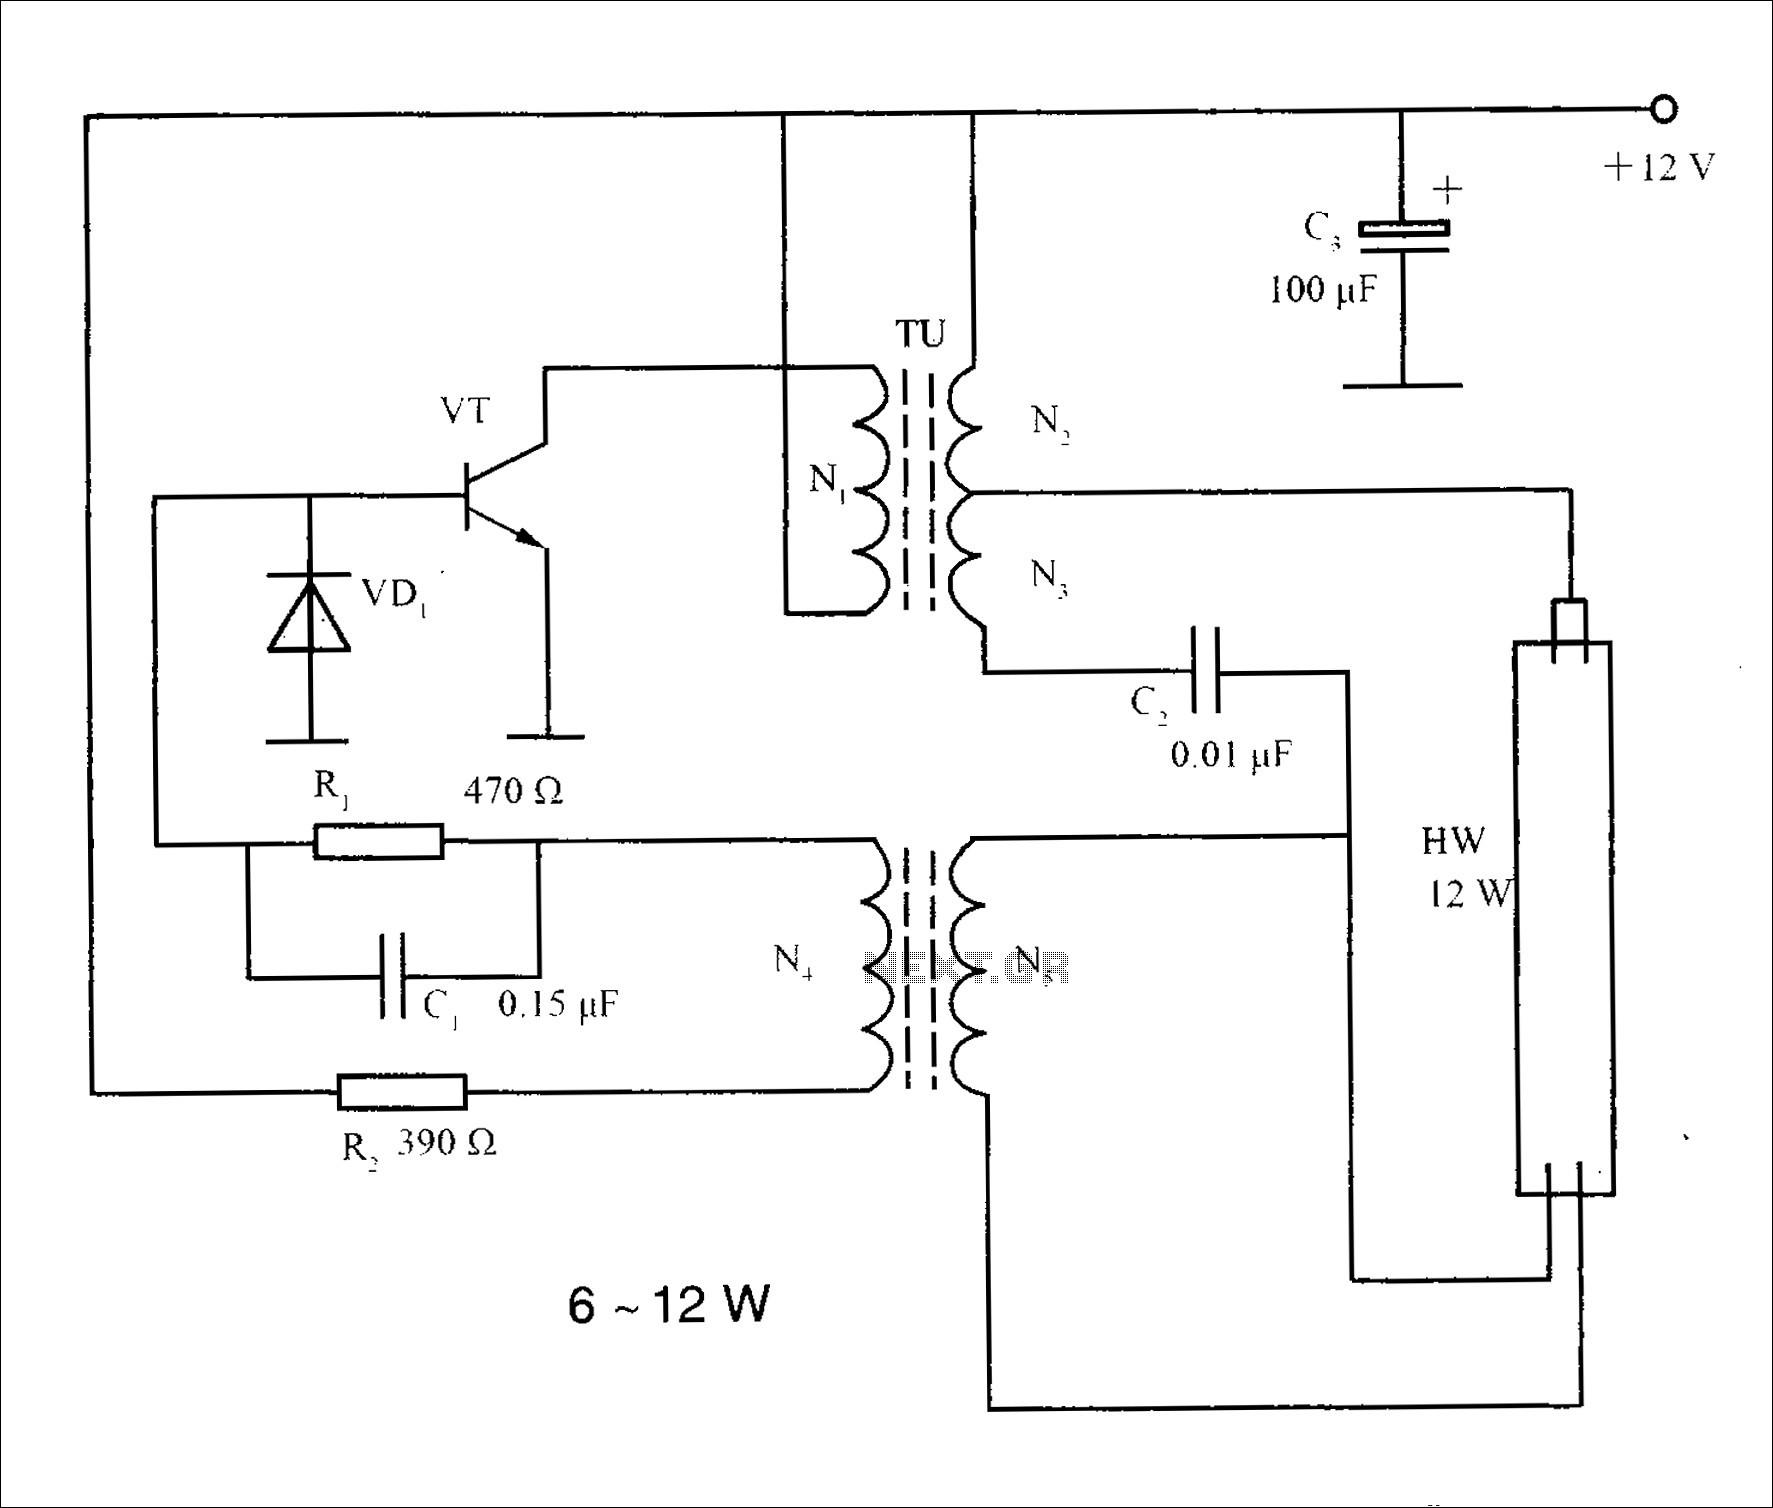 hight resolution of amazing pact fluorescent lamp circuit diagram elegant led bulb circuit wiring diagram ponents with lamp circuit diagram